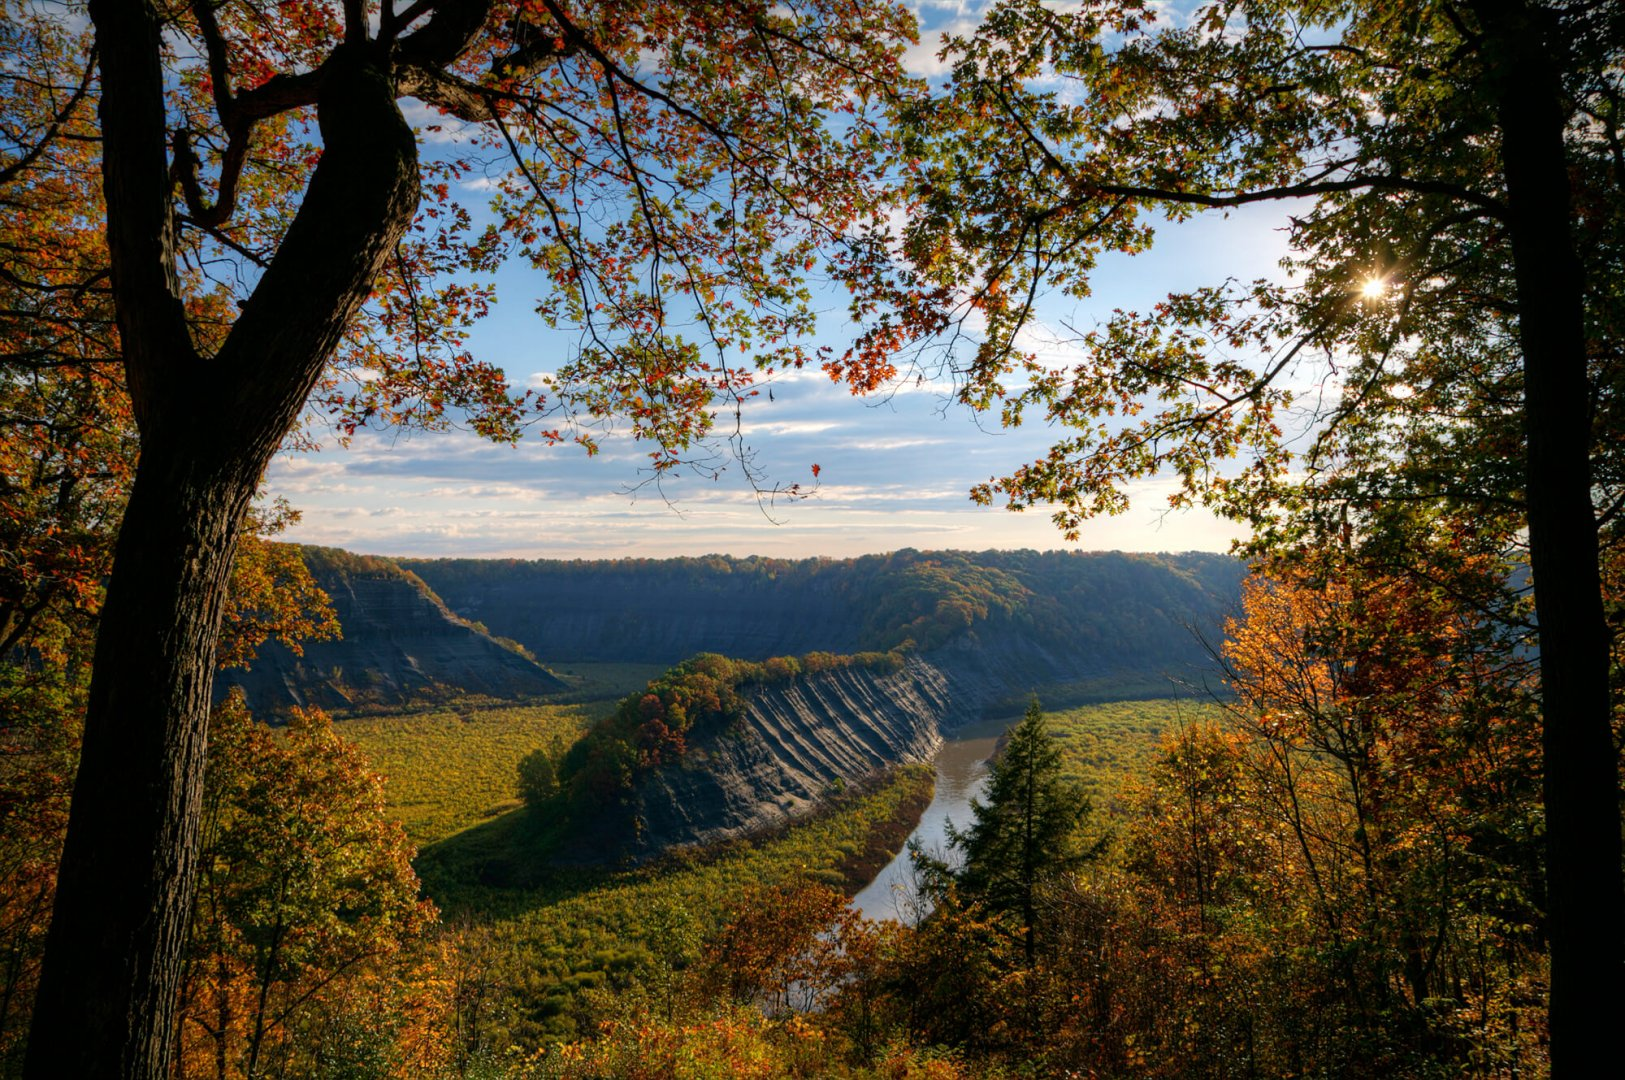 Open Valley - view of Hogsback ridge in Letchworth State Park